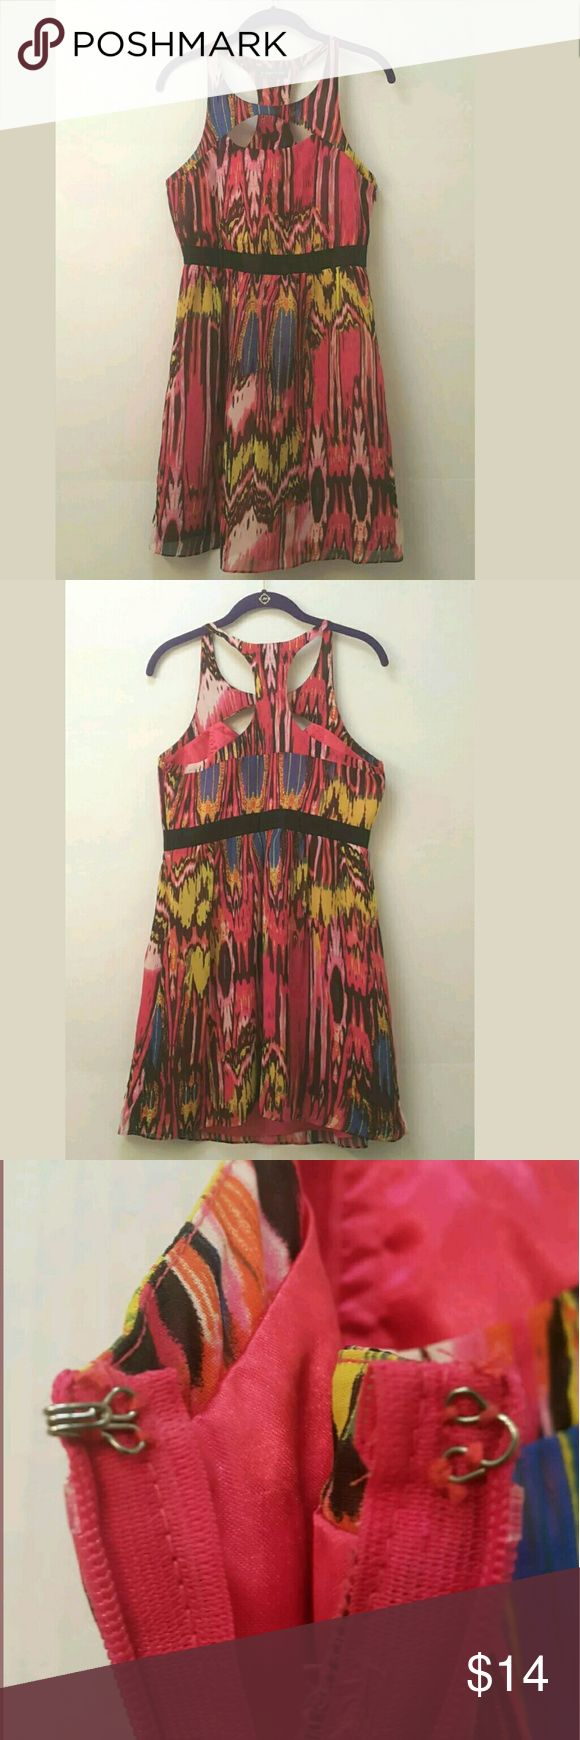 Rampage Multi Color Dress (All Offers Welcomed) Rampage Multi Color Dress Size Large Please see pictures. Any questions, please ask me. I welcome all offers. I will give you a price that works for you. Thanks for stopping by!!!!!!!! Rampage Dresses Mini